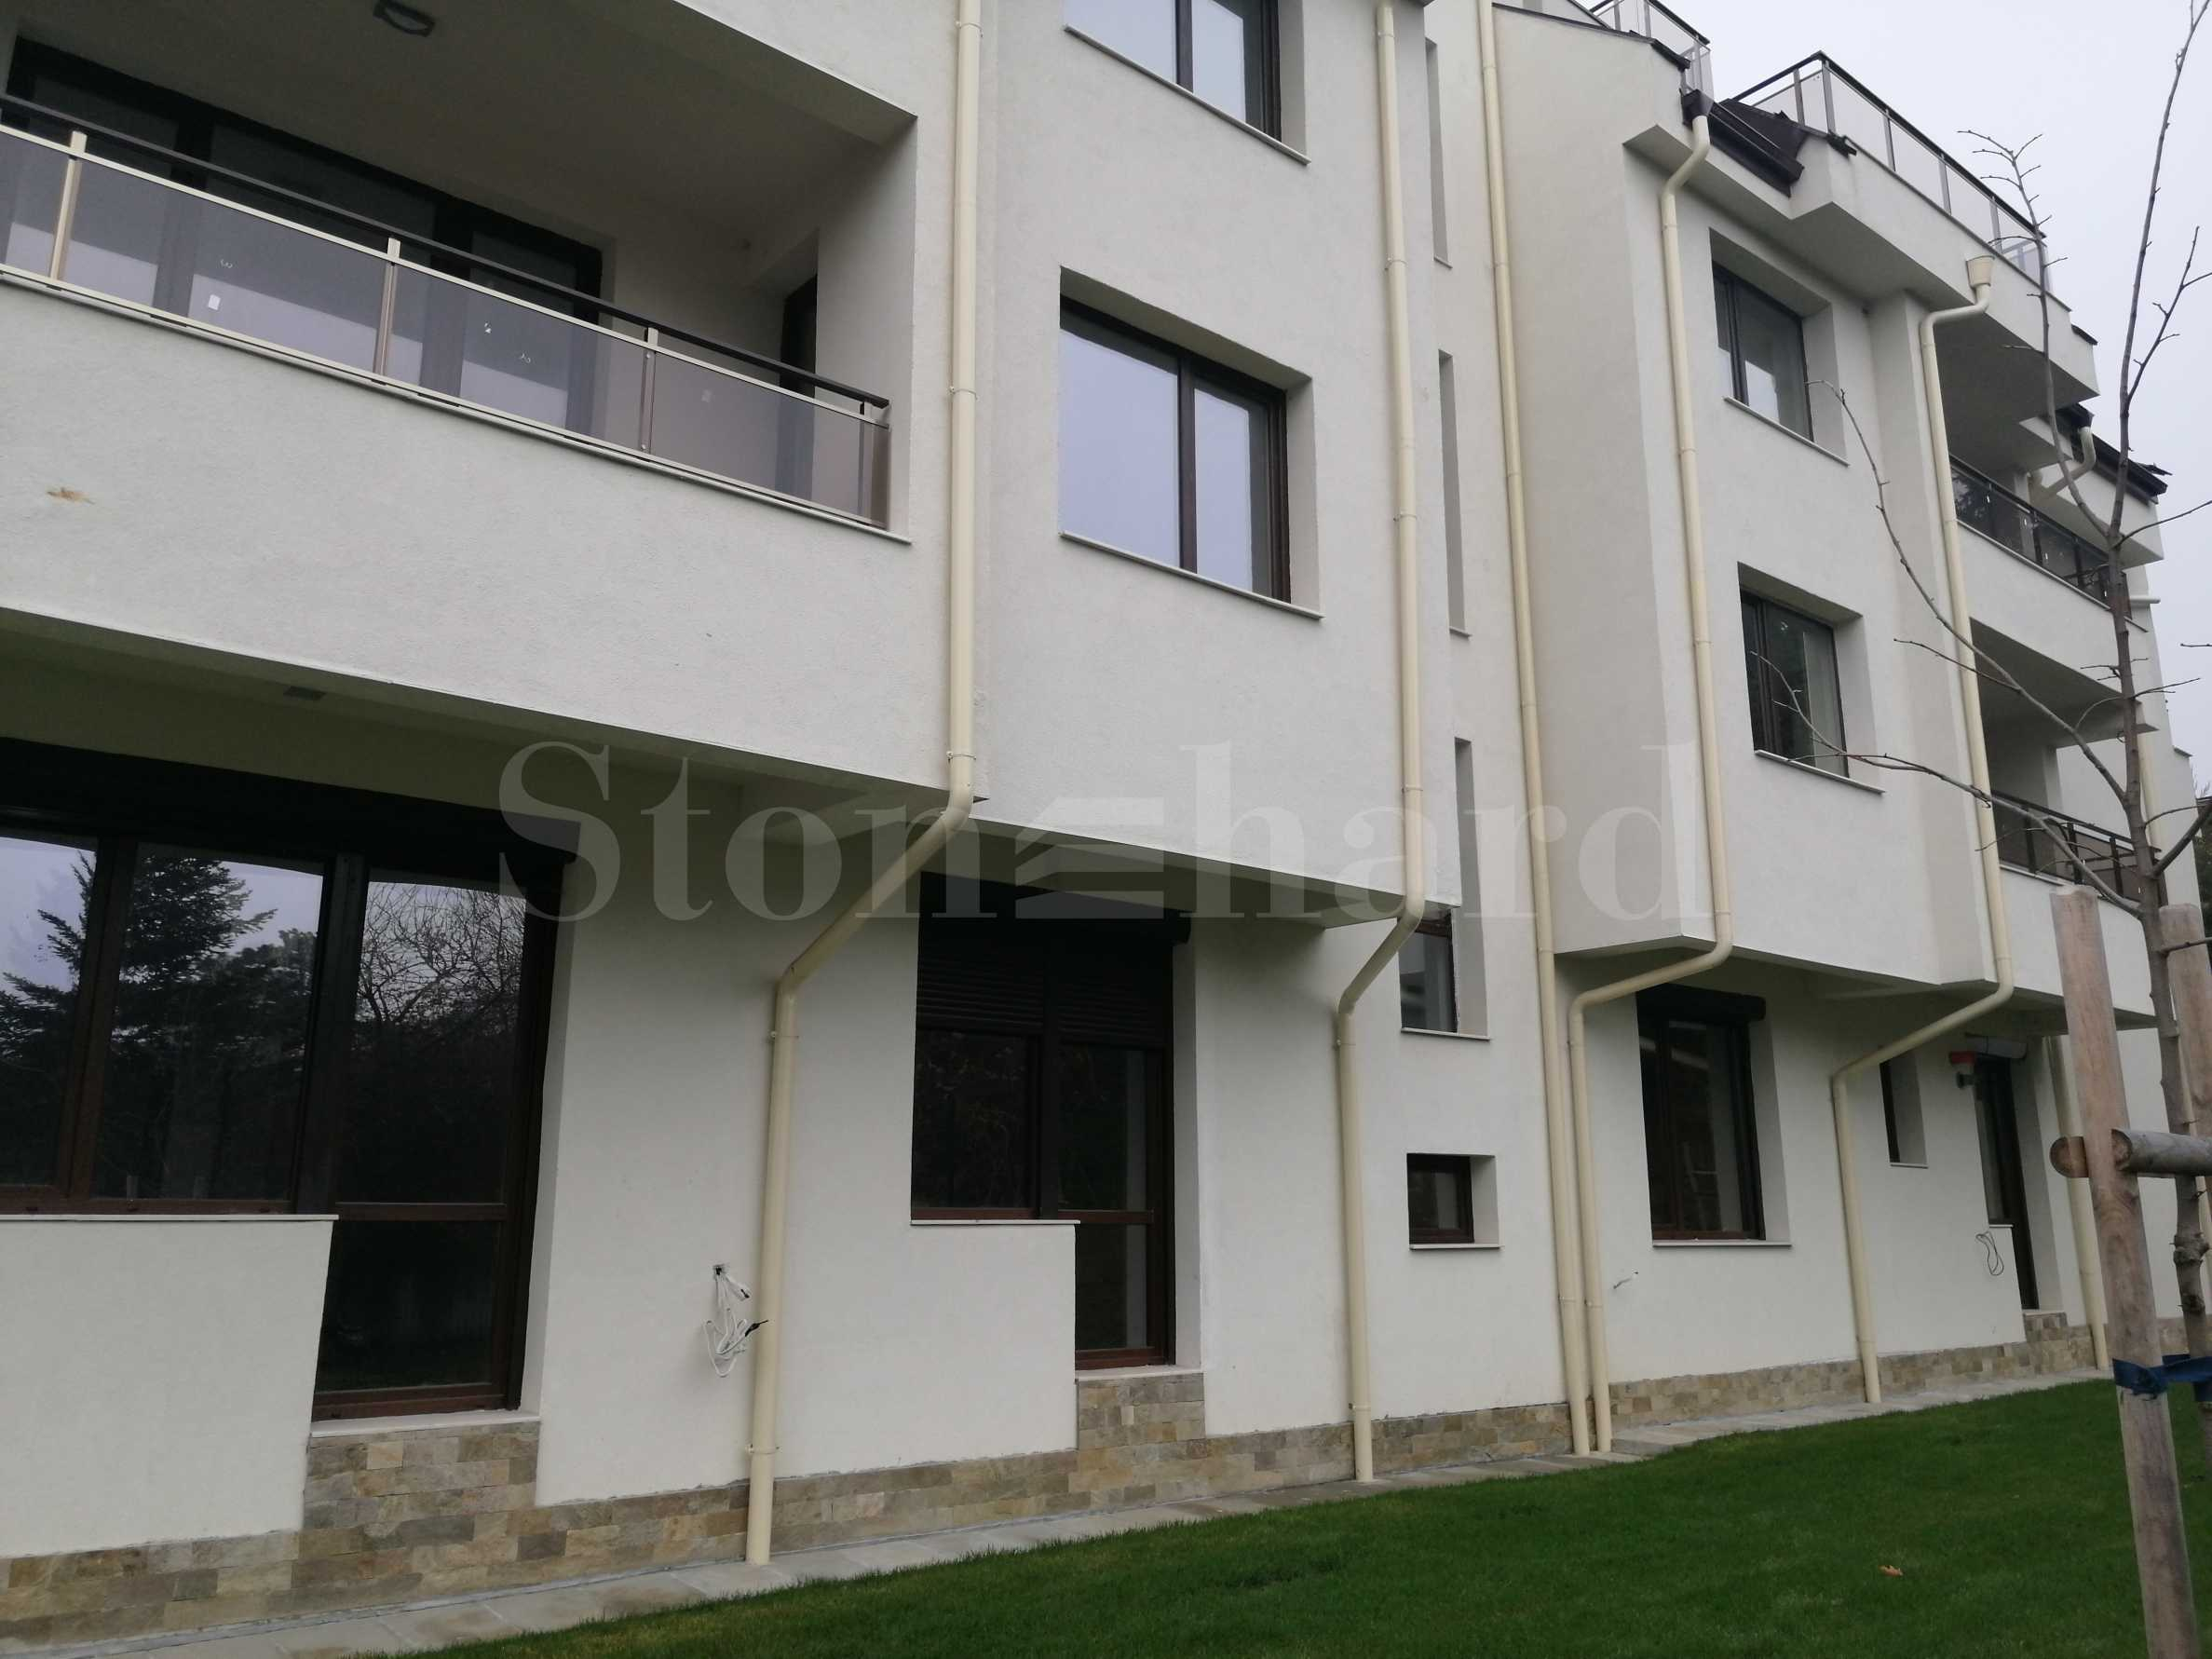 Apartment in Sofia2 - Stonehard